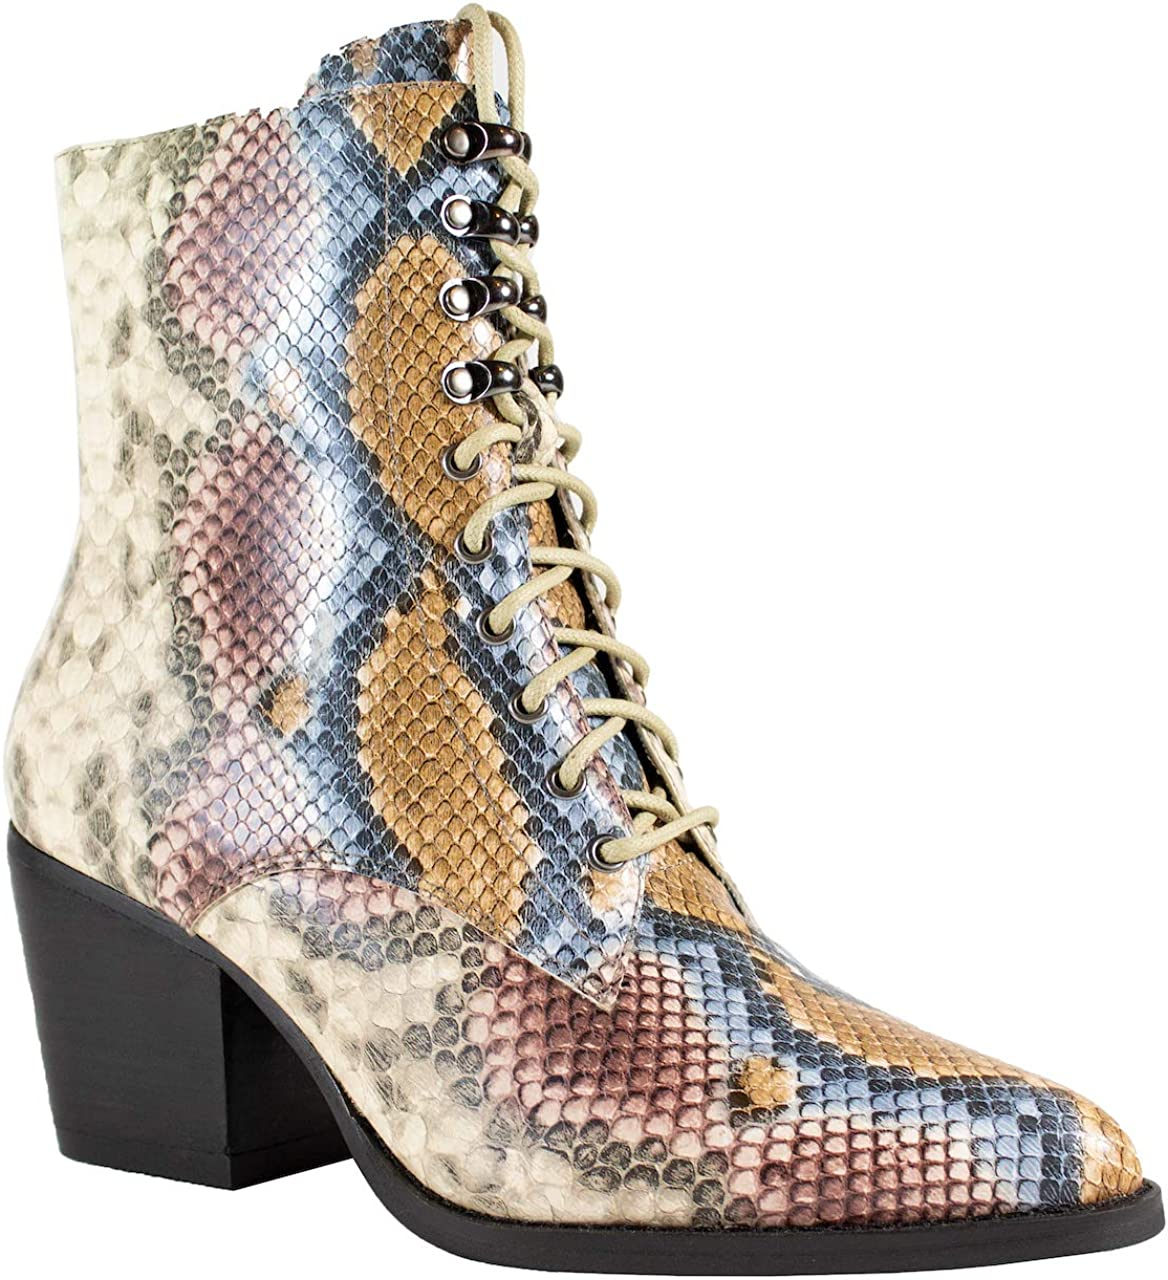 2020 IN Jane Women's Max 47% Financial sales sale OFF Combat Boots 7. Booties Ankle Snake Multi